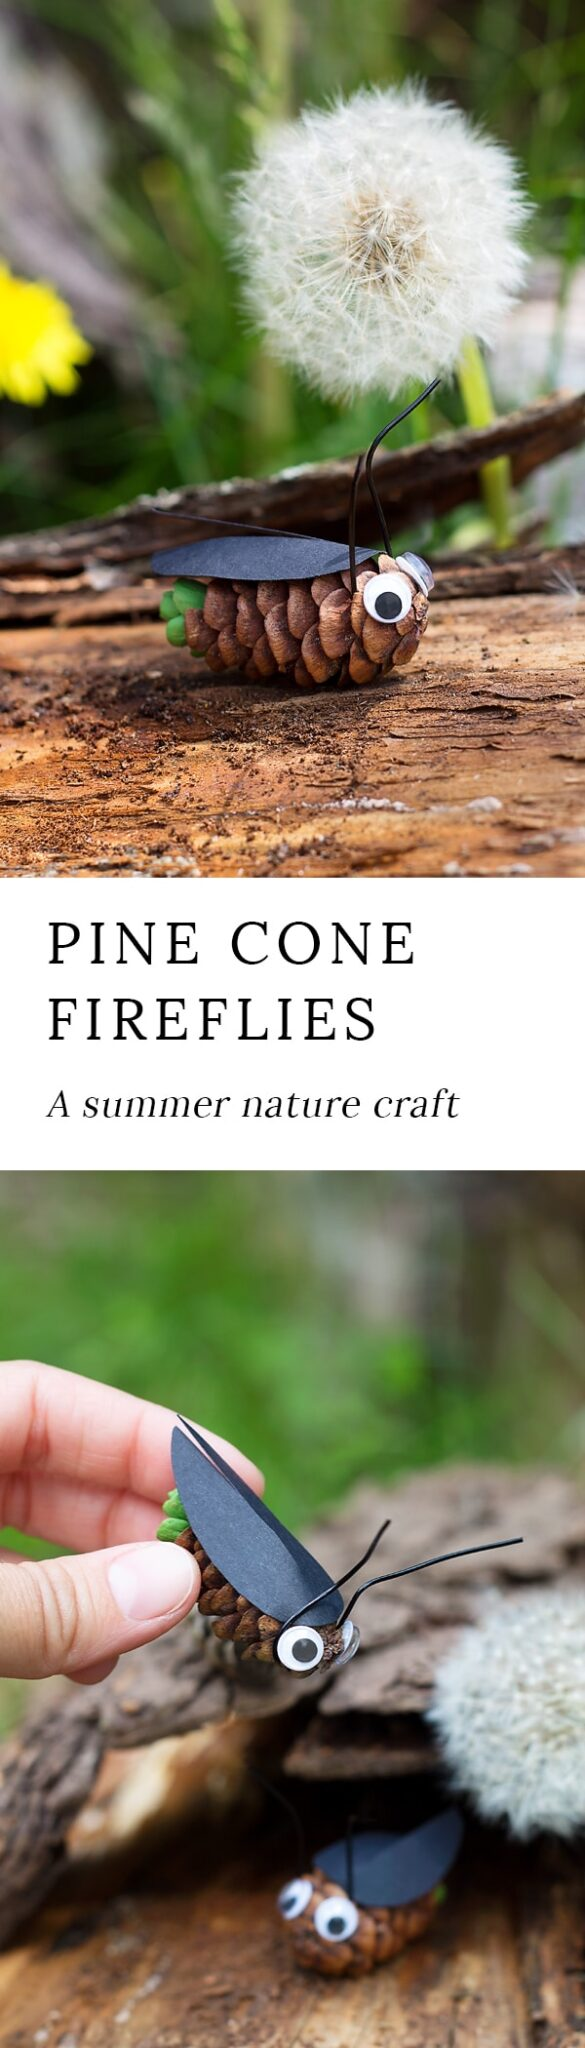 Learn how to make Pine Cone Fireflies from small pine cones, construction paper, and paint.It's an easy and fun summer nature craft for kids of all ages! #naturecrafts #pineconecrafts #fireflies #insectcrafts #easycraftsforkids #summercrafts #summernaturecrafts